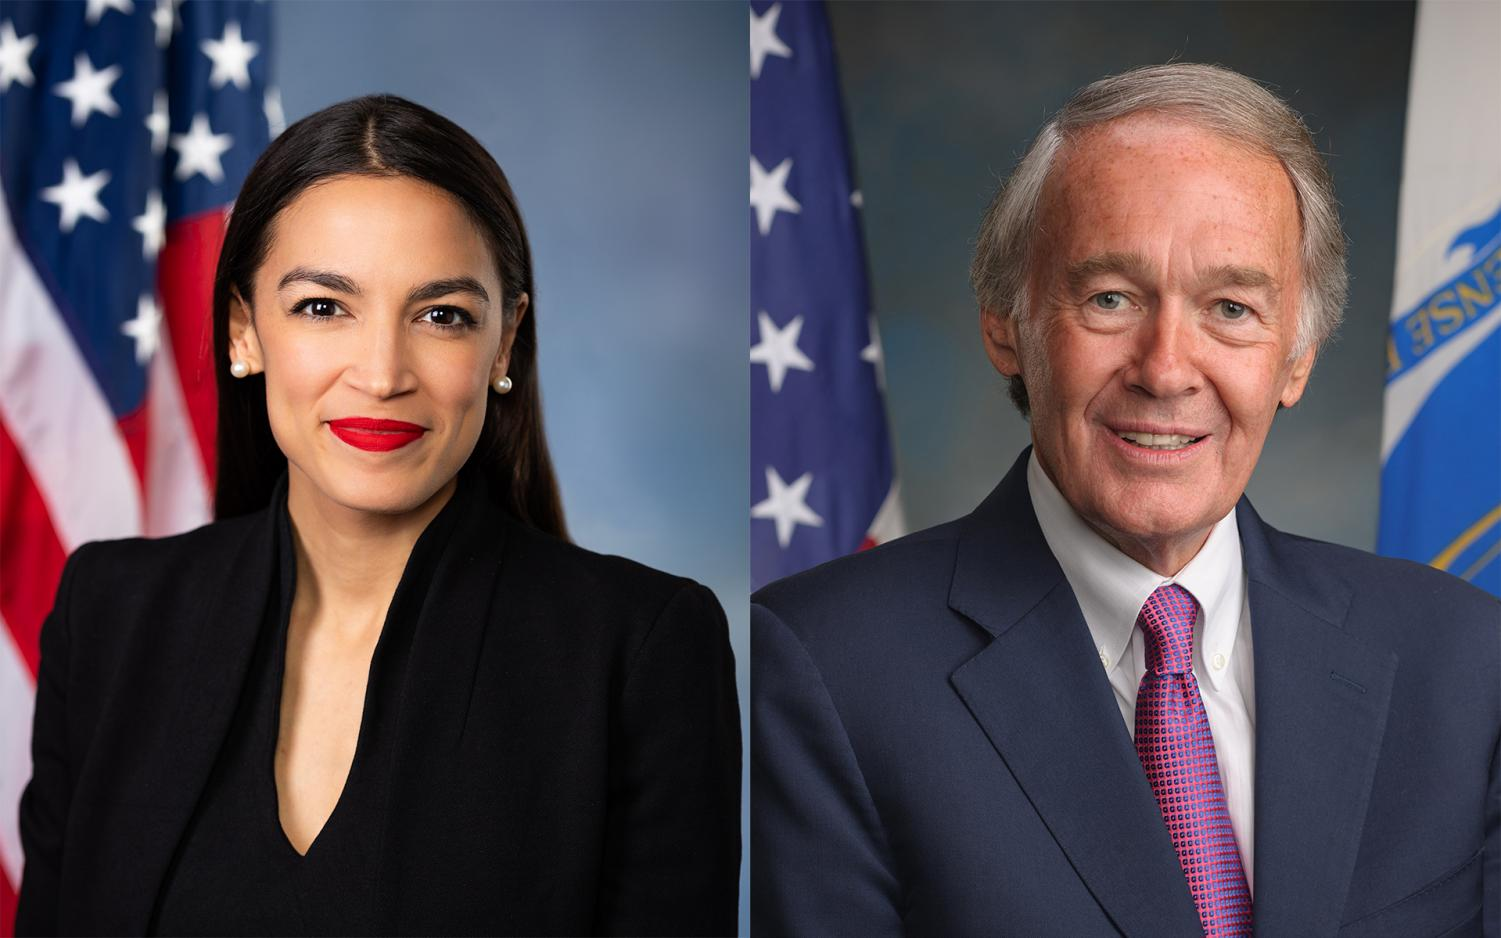 Senator Ed Markey (D) of Massachusetts and first-term Congresswoman Ocasio-Cortez (D) of New York proposed the Green New Deal with the goal of sparking conversation about climate change, and providing a bold, innovative solution.